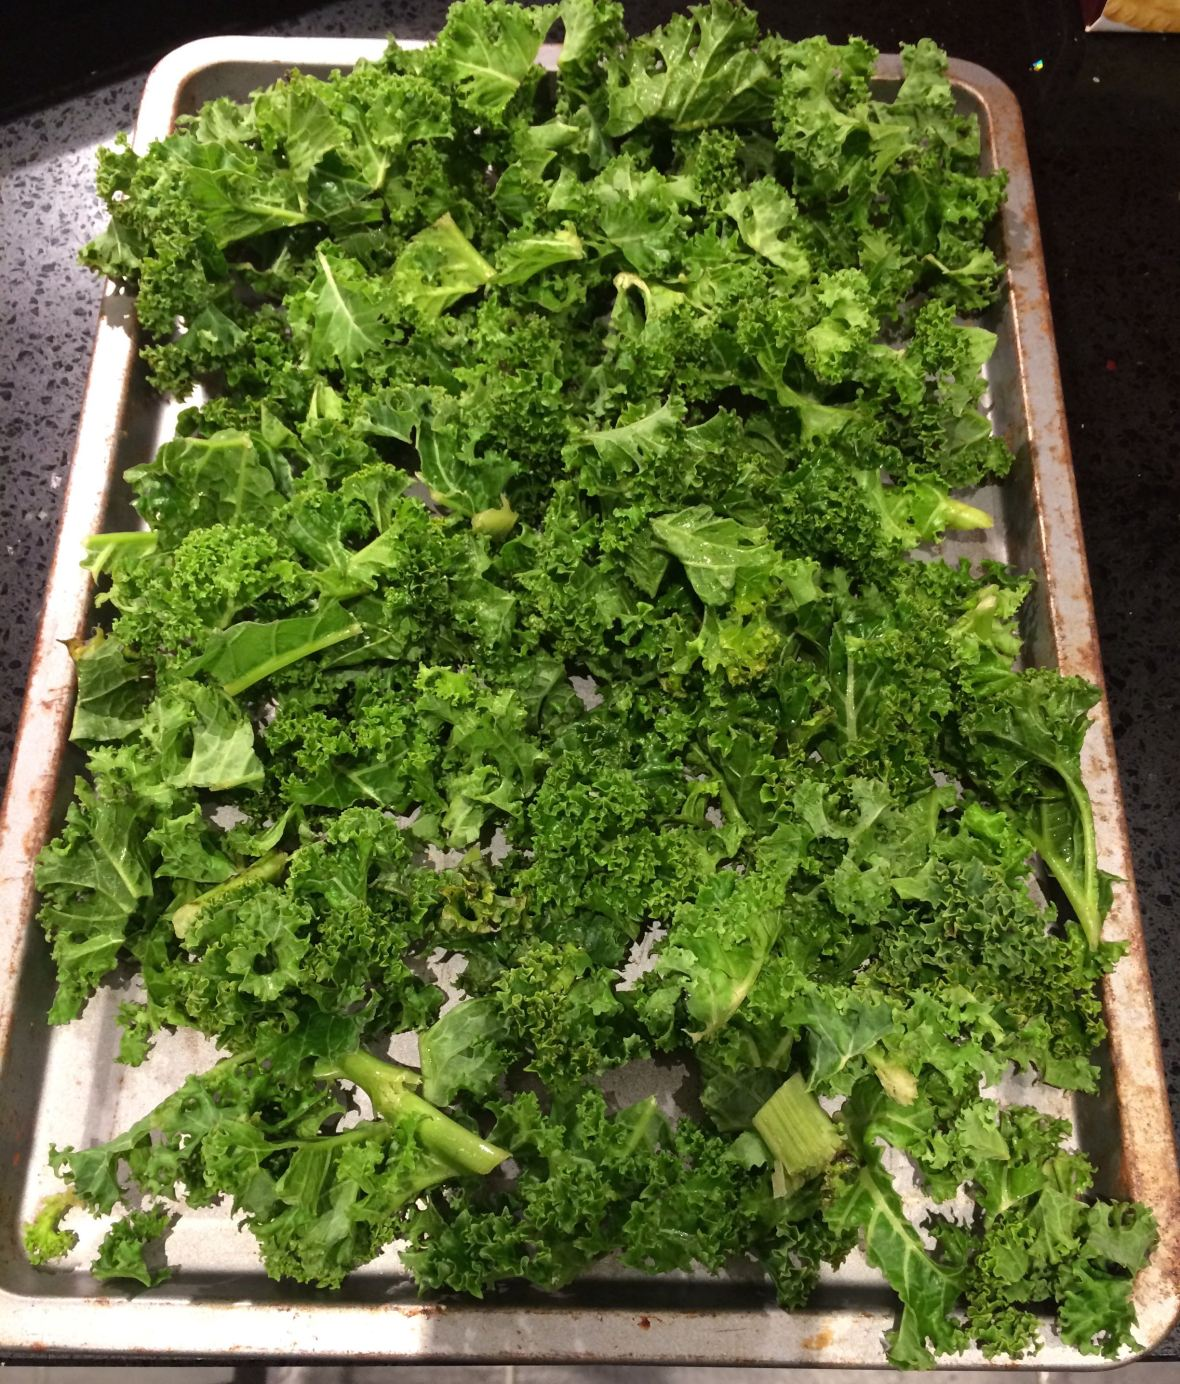 A couple of generous handfuls of kale